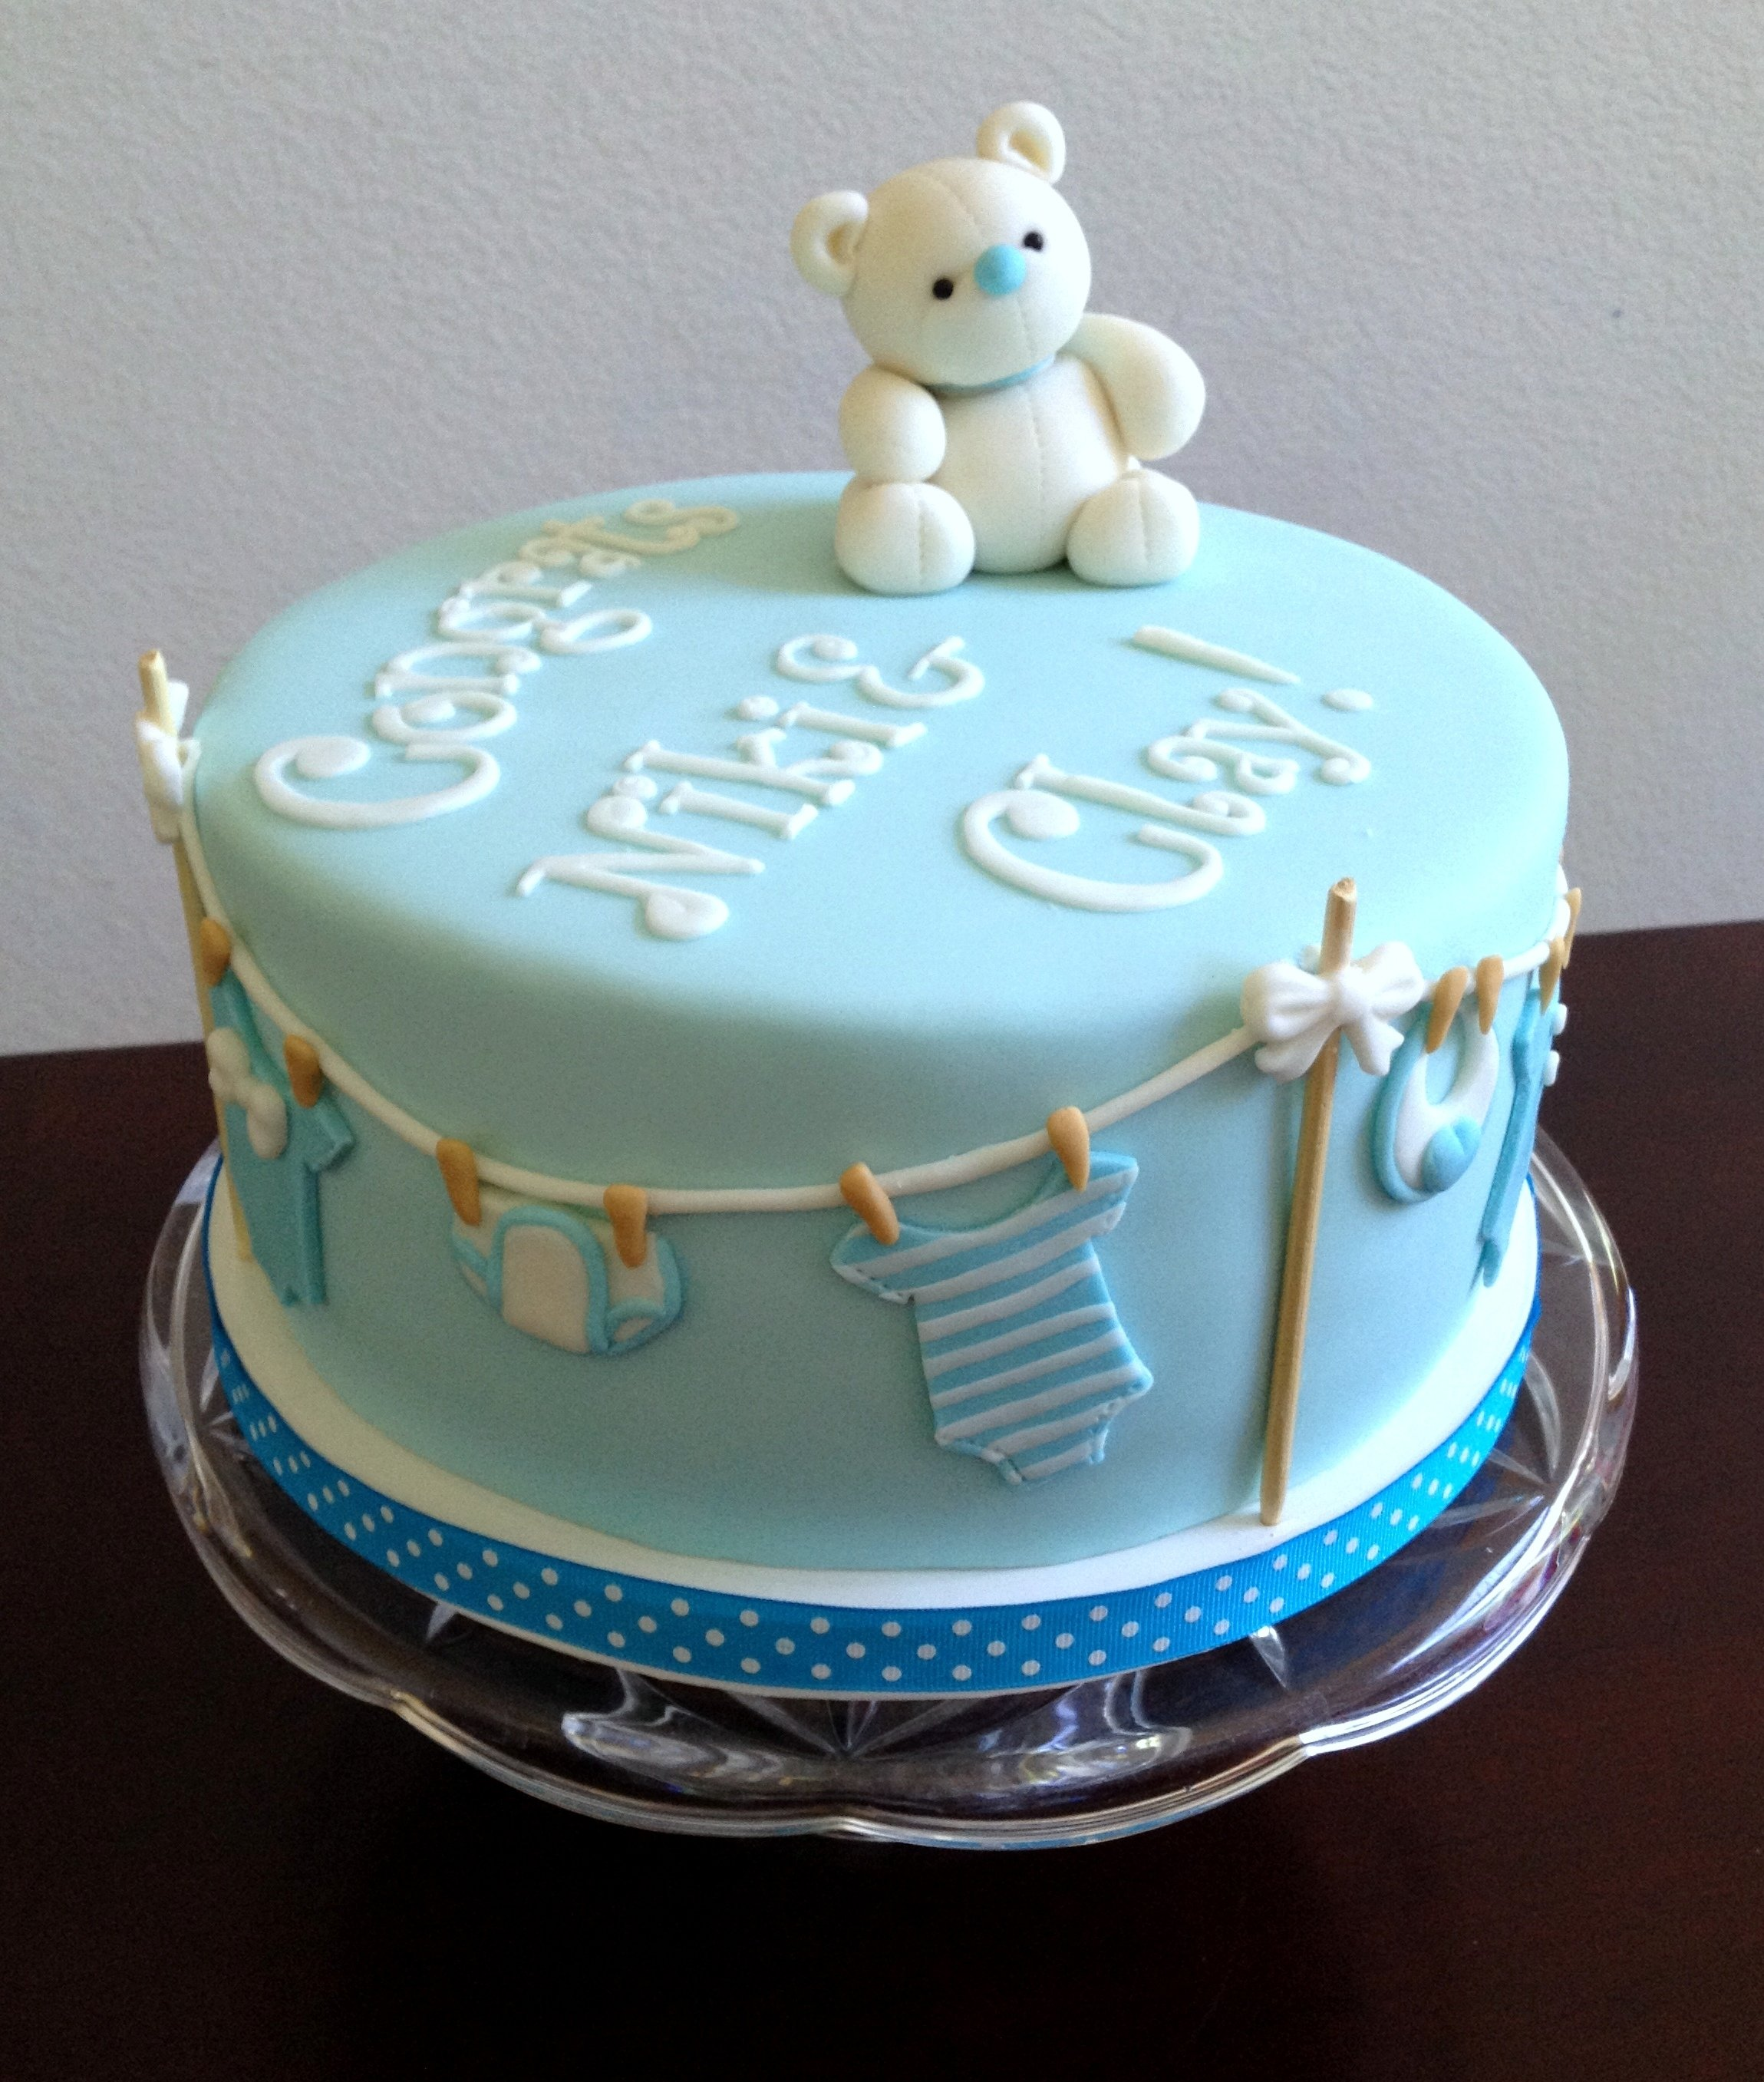 10 Amazing Baby Shower Boy Cake Ideas baby showers the cup cake taste cupcakes brisbane boy shower sayings 2020